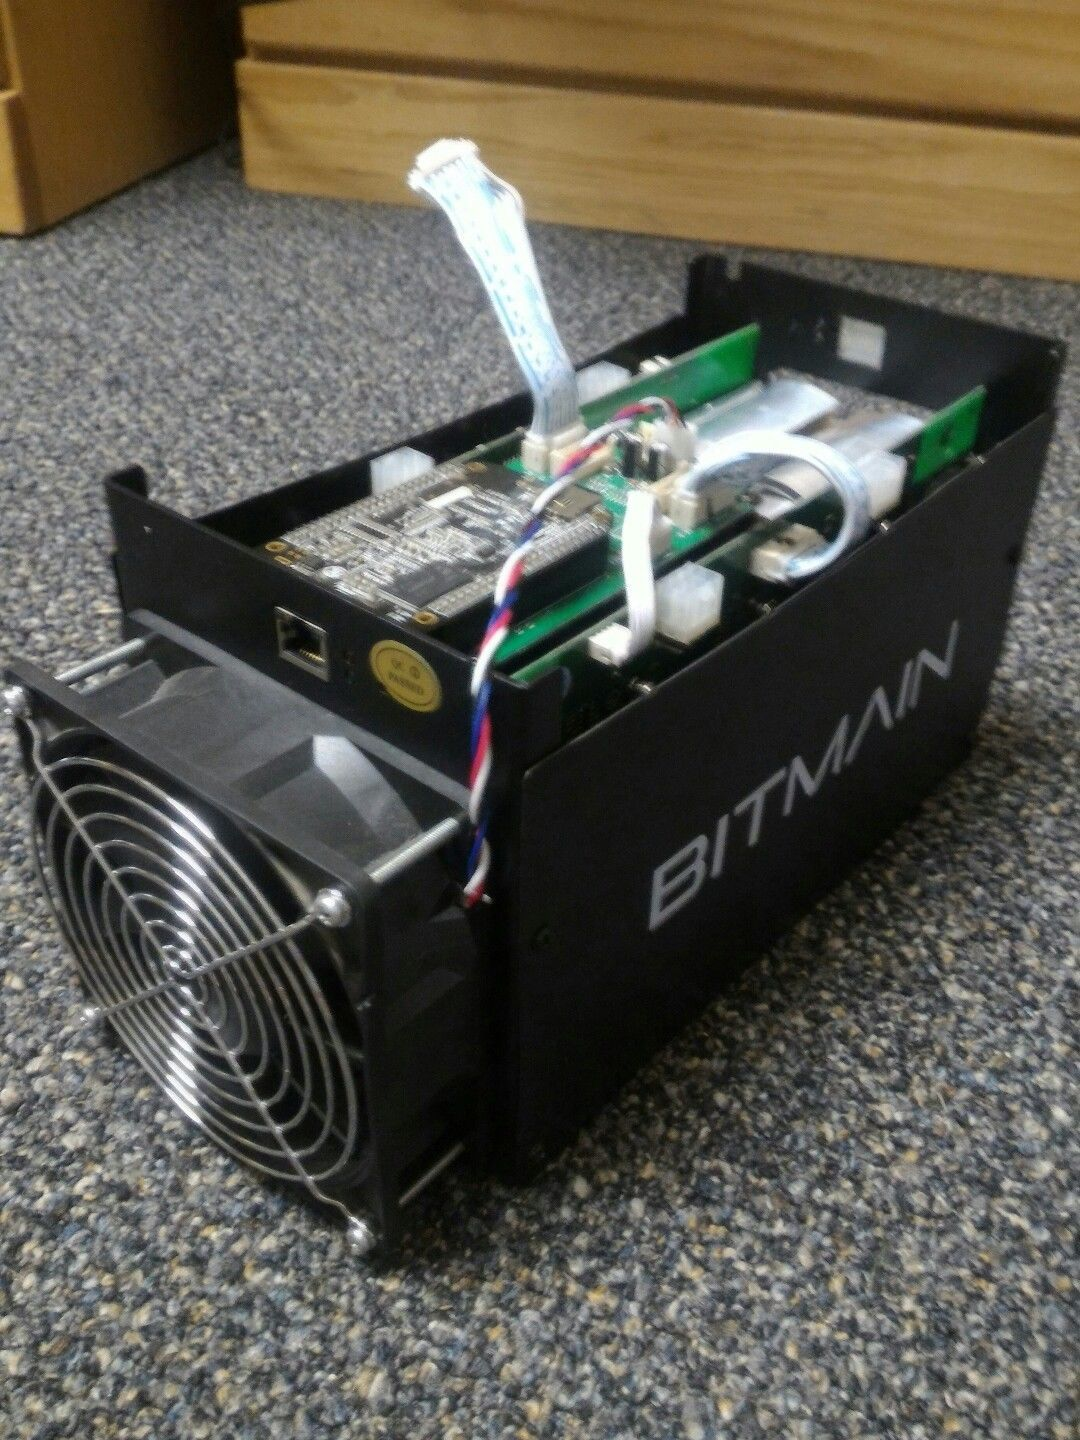 Item specifics Brand: Bitmain Processing Speed (GH/s): 1155